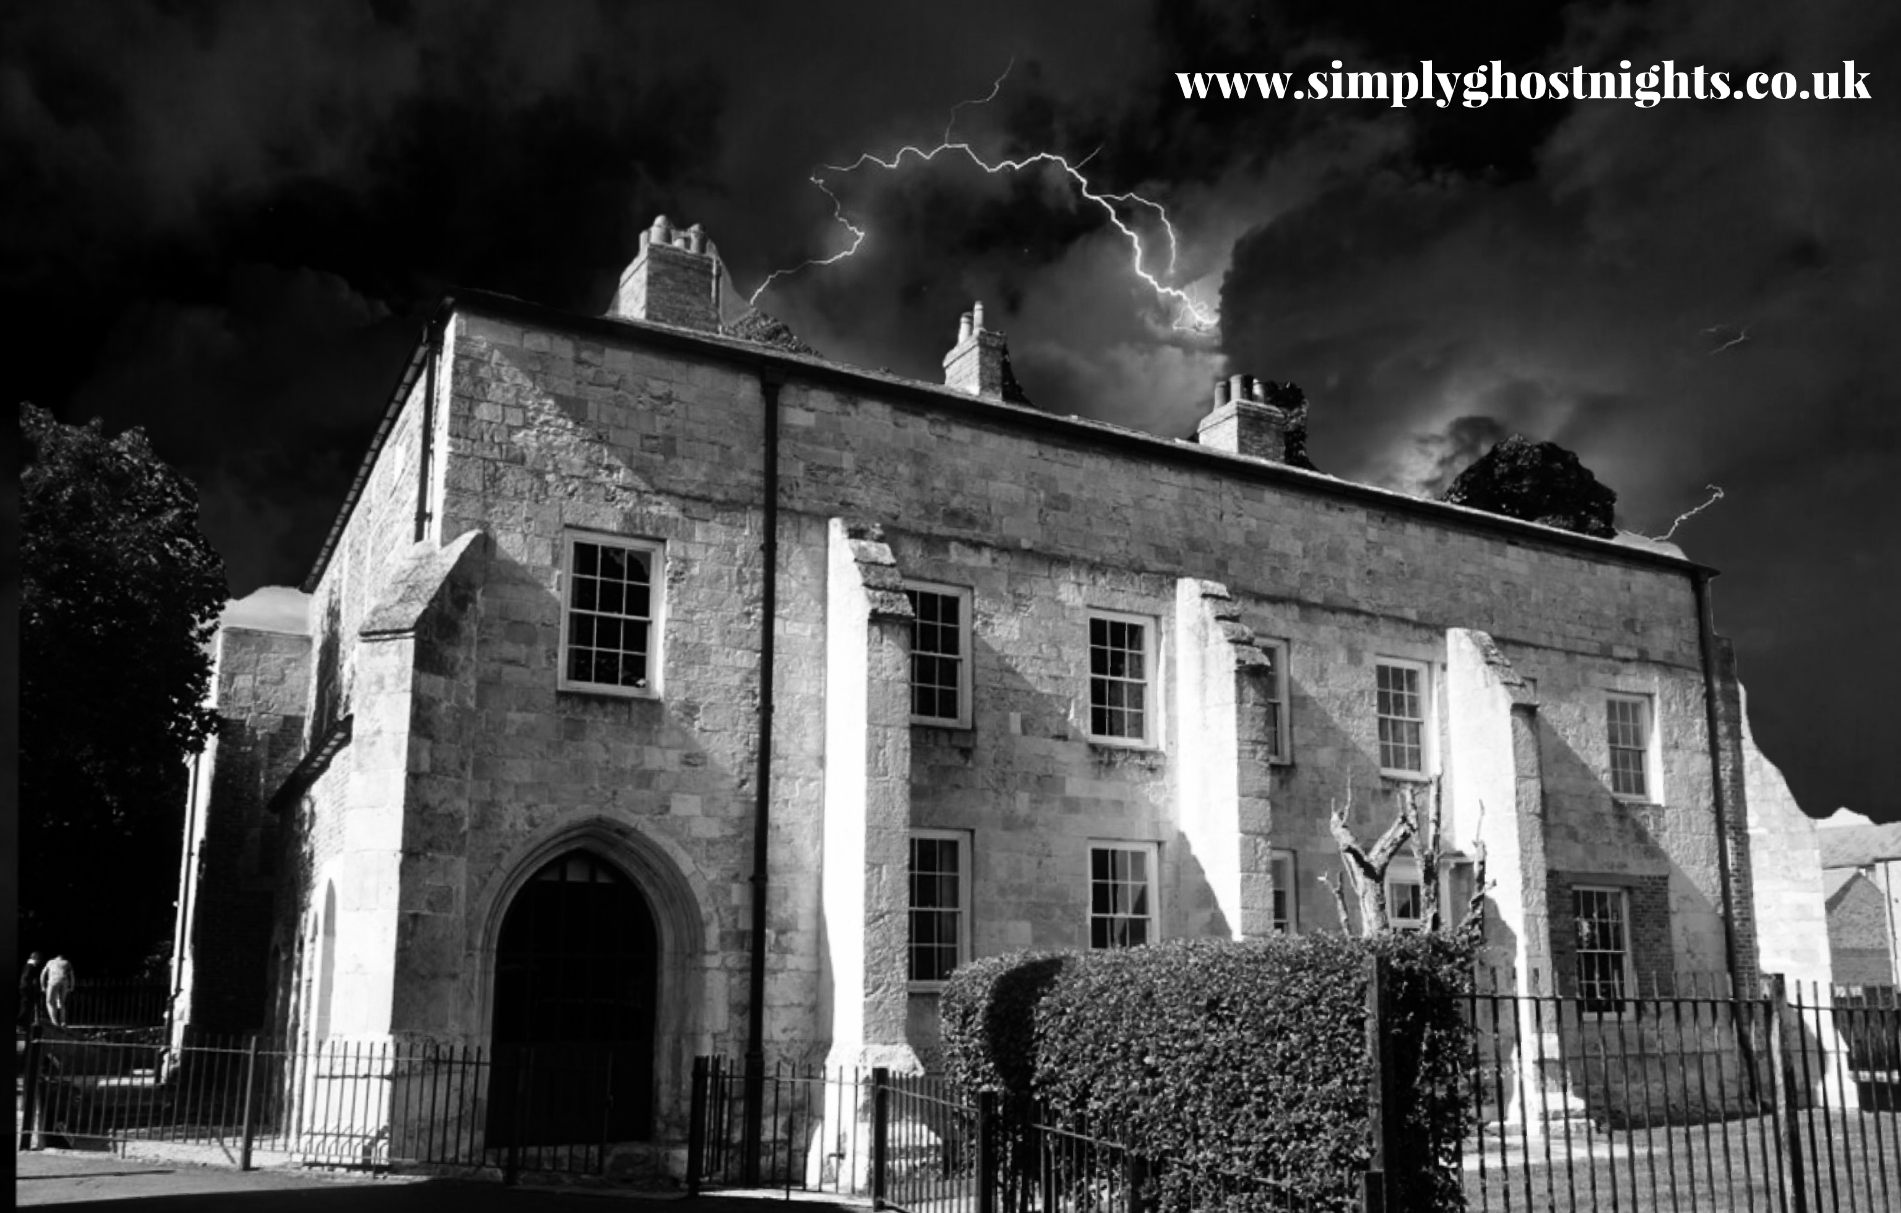 Ghost Hunt @ Bishop's Manor, With Simply Ghost Nights